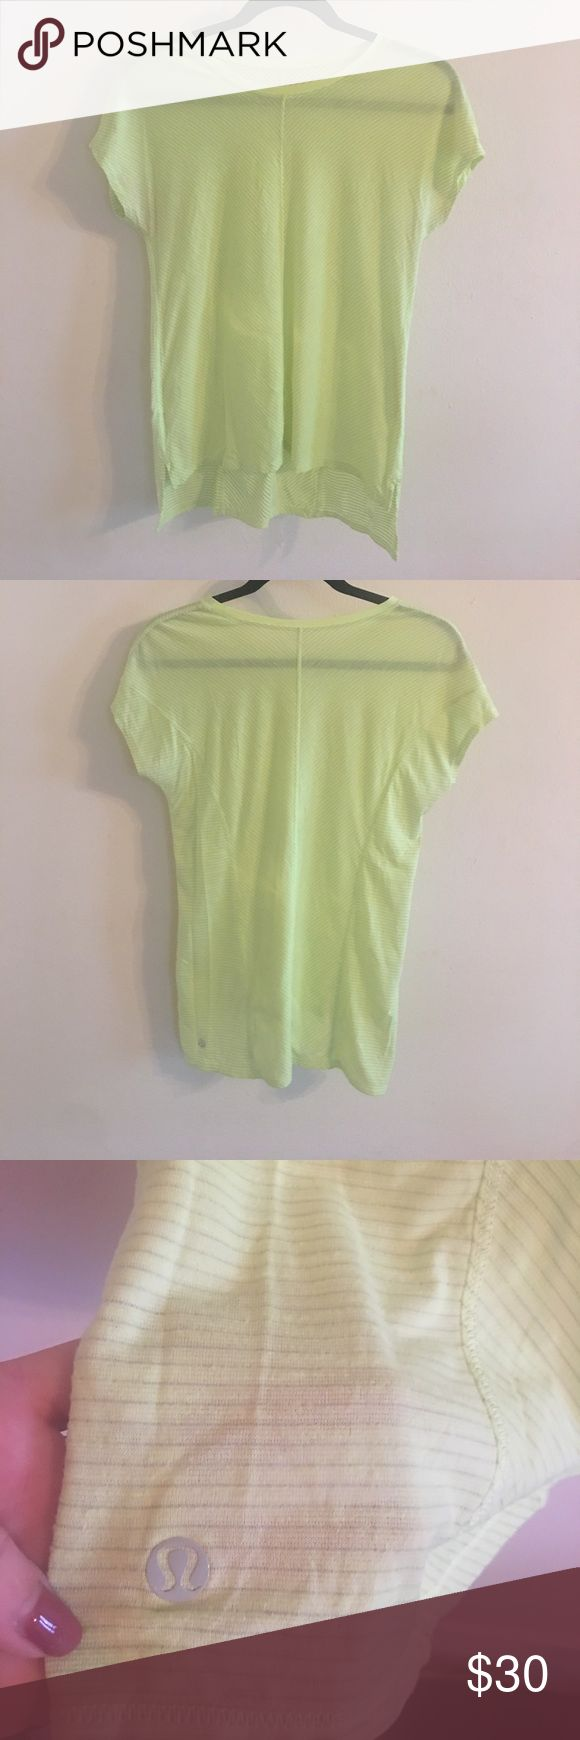 Lululemon neon yellow top Bright yellow lululemon shirt sleeve shirt. Super light and great for running or at the gym. More of a high low fit- shorts in the front and longer in the back. Open to offers but please no low balls! lululemon athletica Tops Tees - Short Sleeve